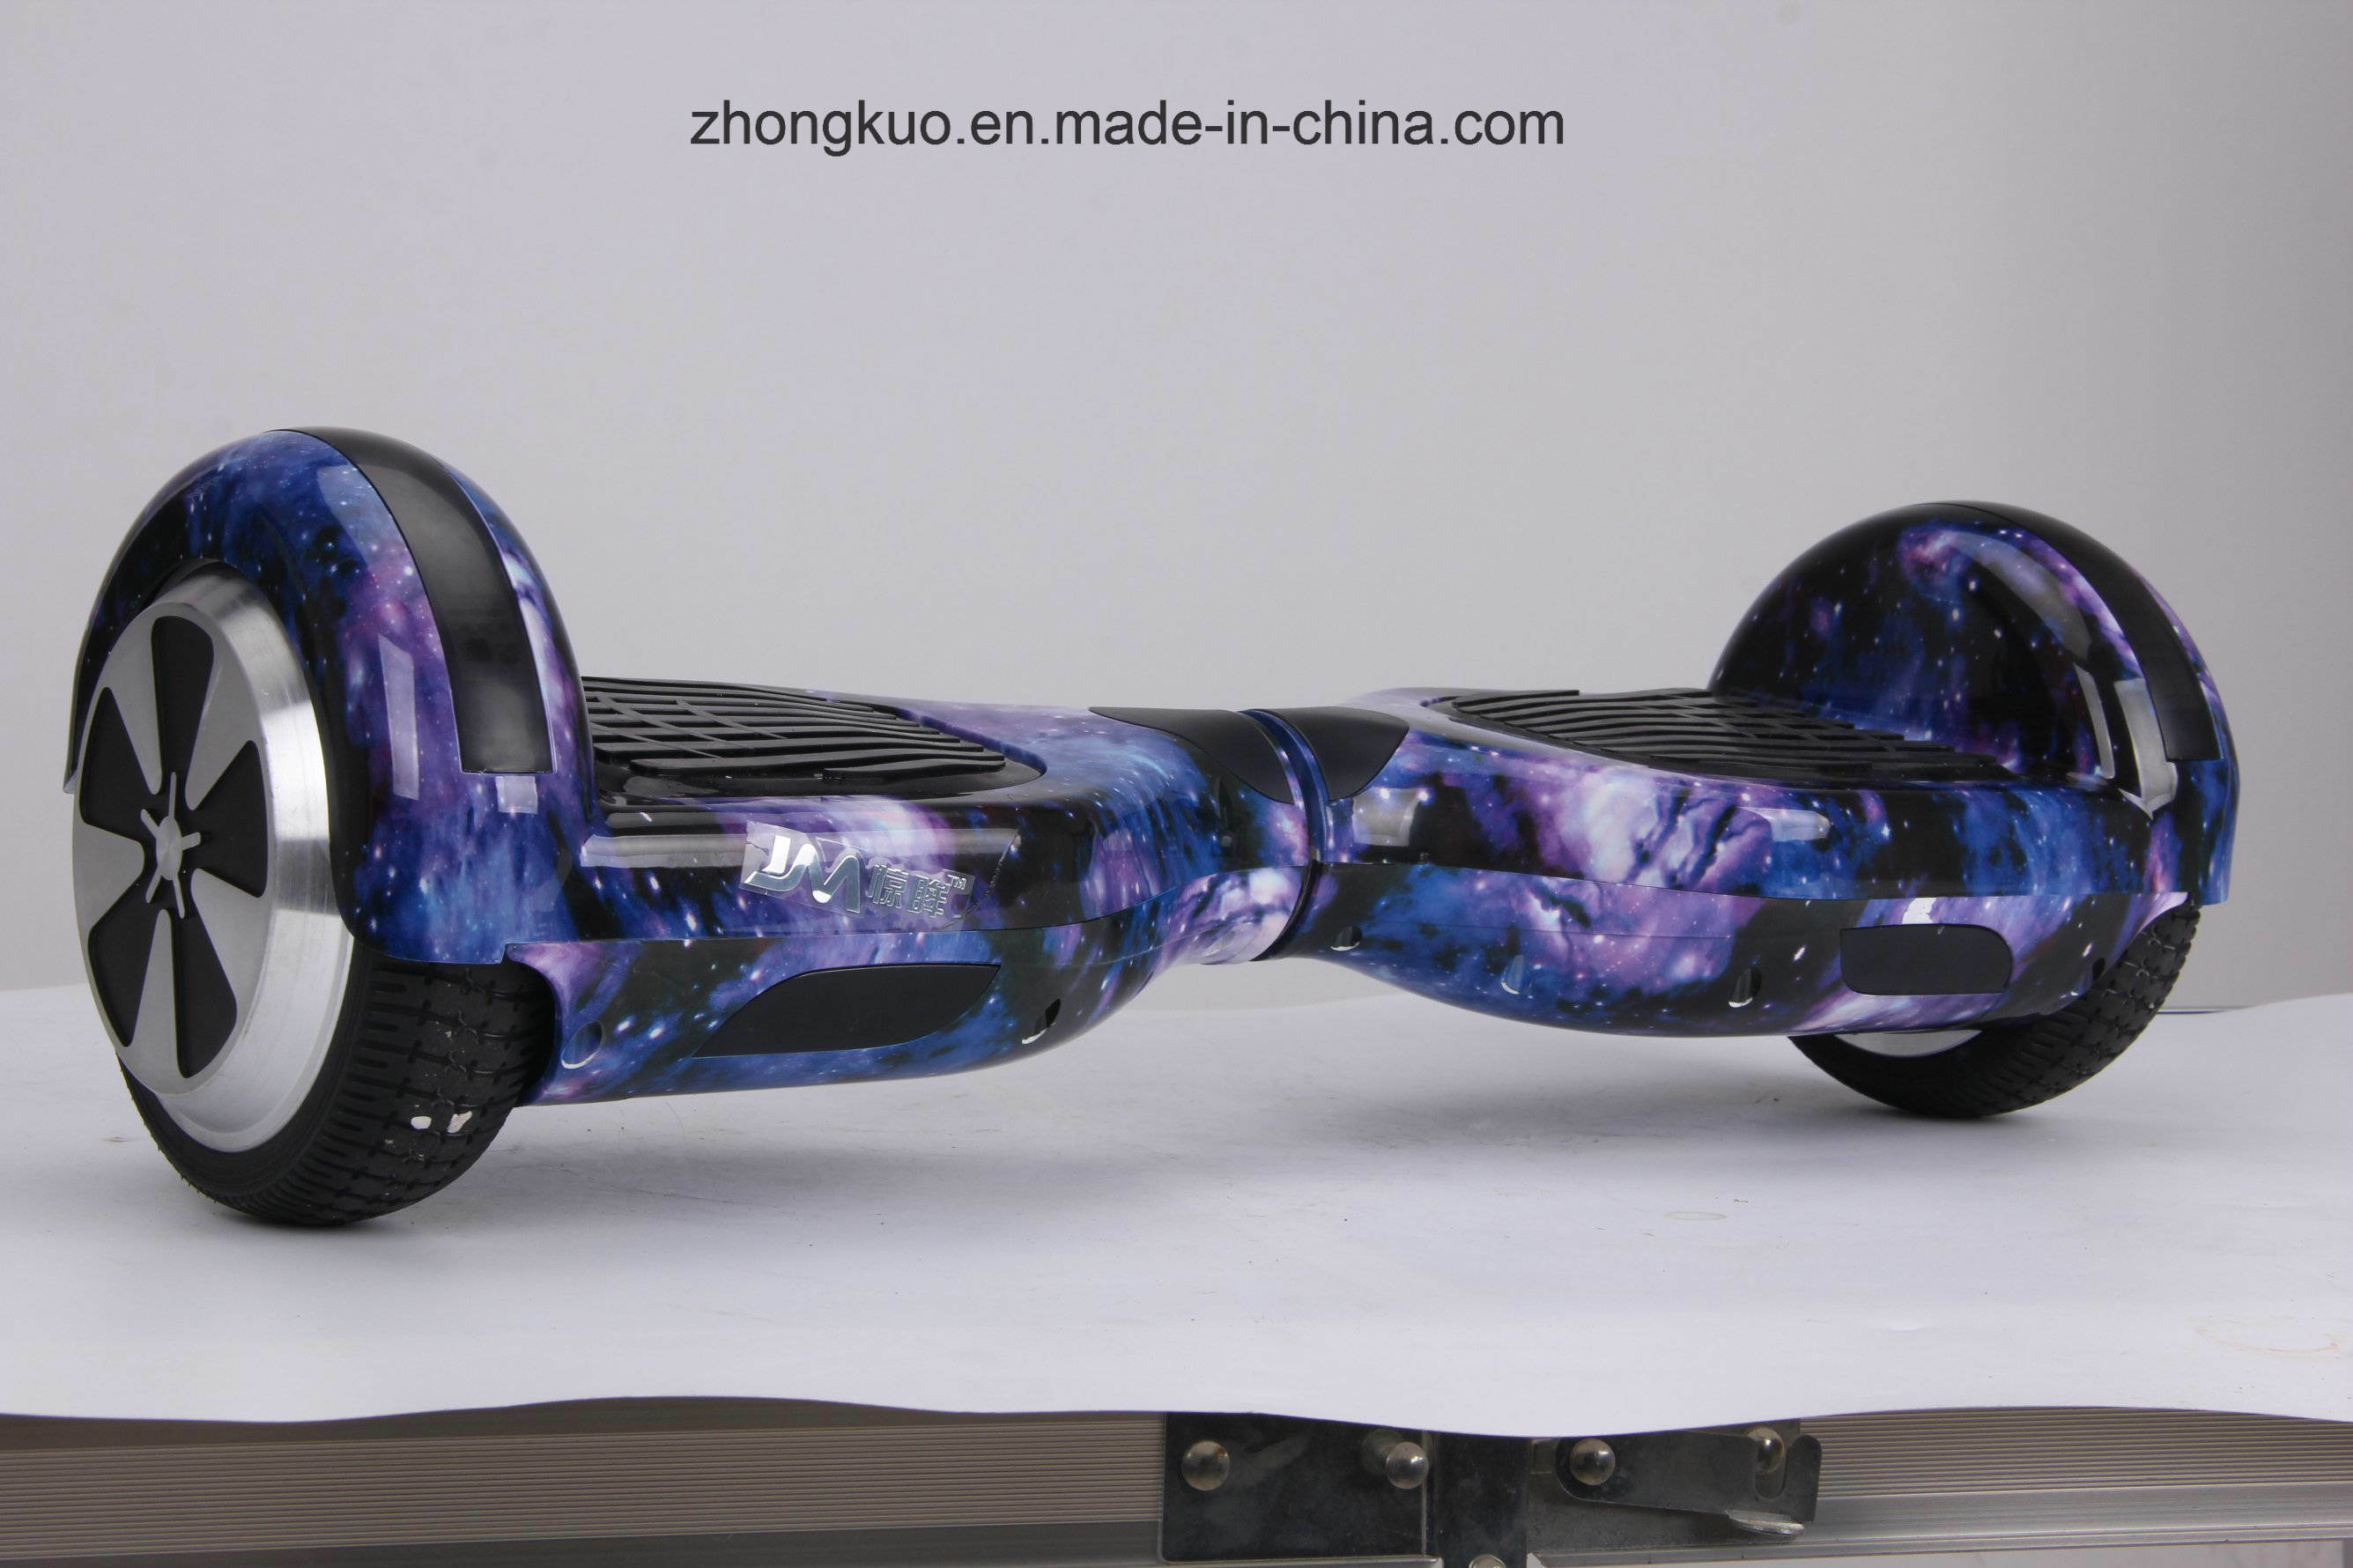 New! 6 Inches Classical Hoverboard Electric Cheap Great Quality Balance Scooter Pacing Good